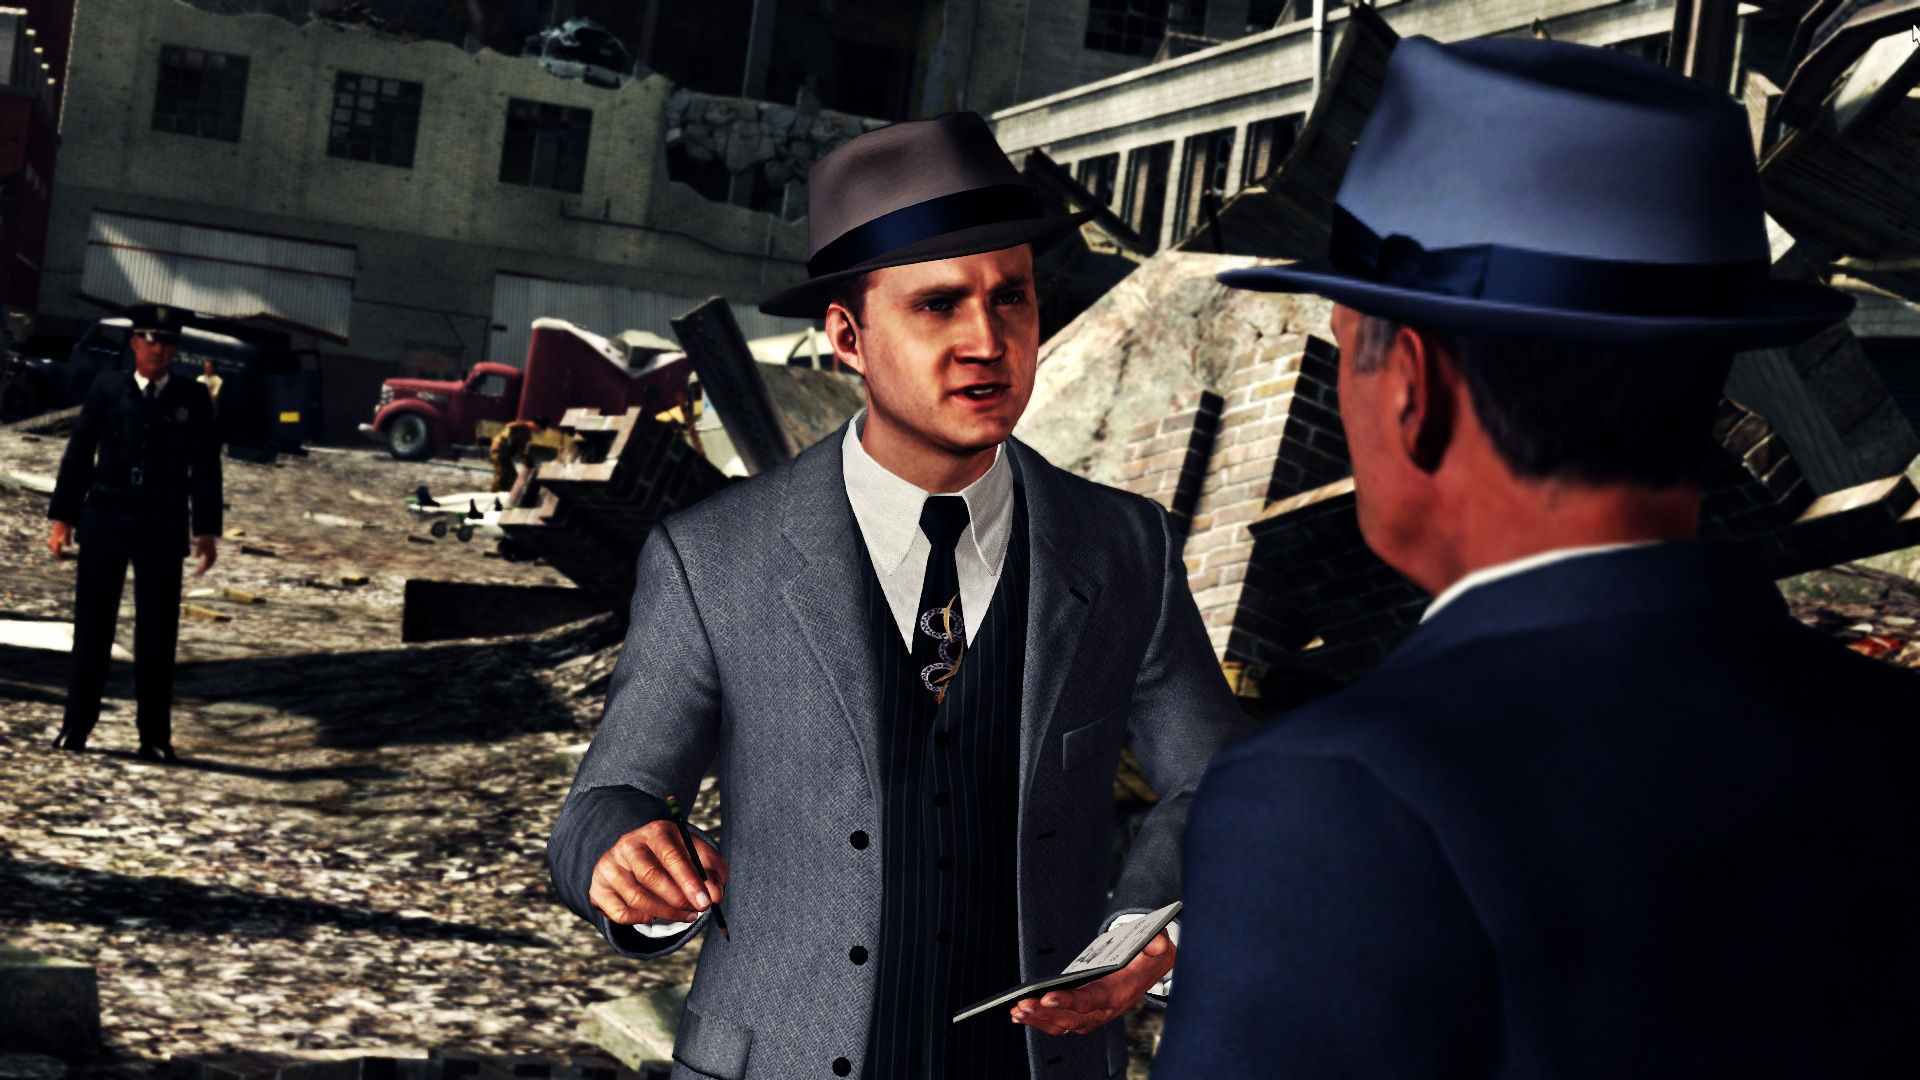 Police games: the best cop games on PC in 2021